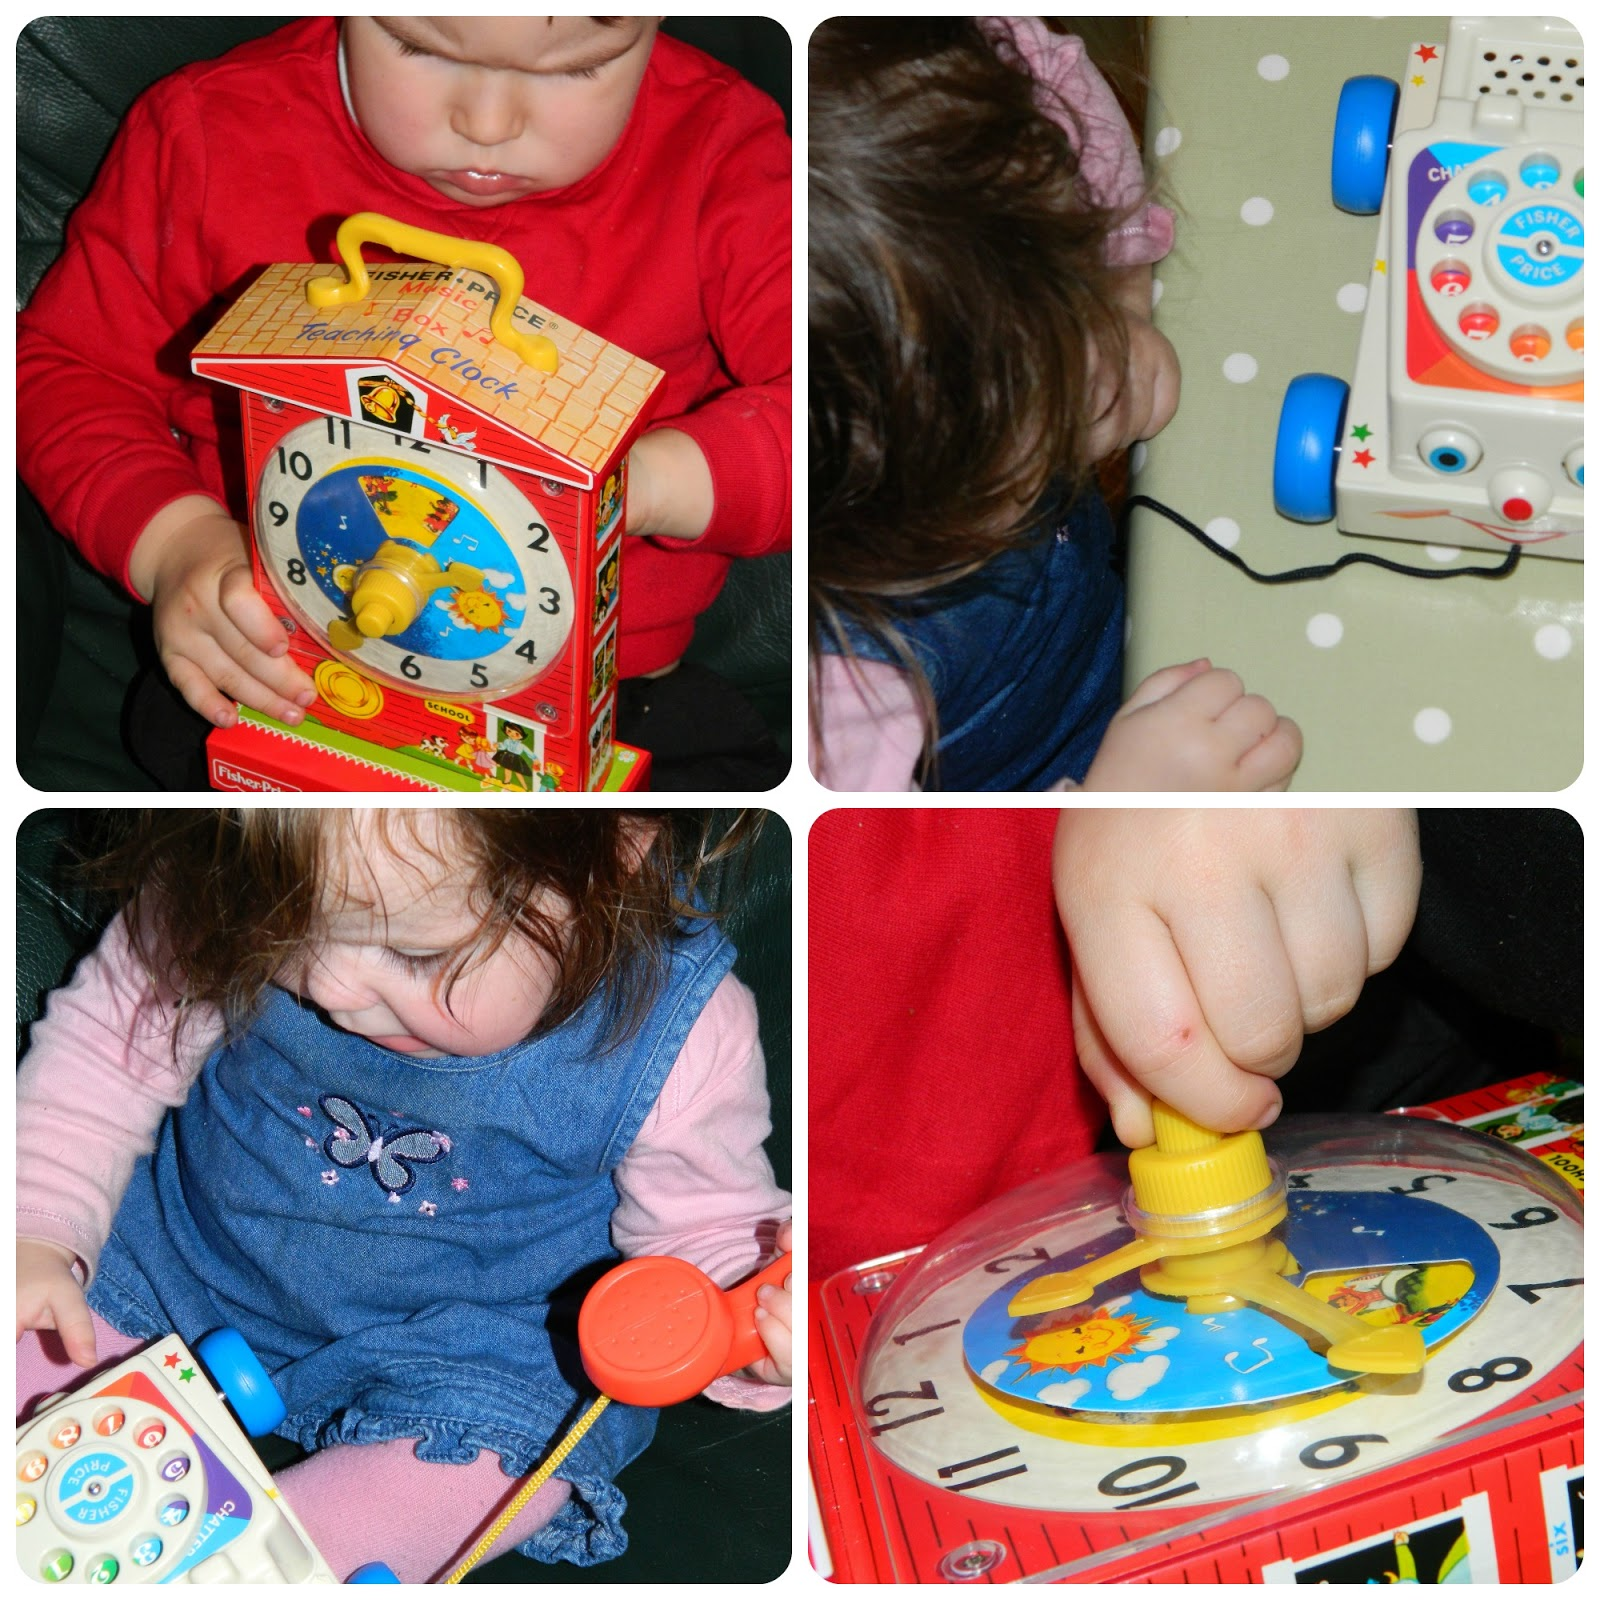 Bud and Little Miss playing with the Fisher-Price Retro Classics Chatter Telephone and Music Box Teaching Clock